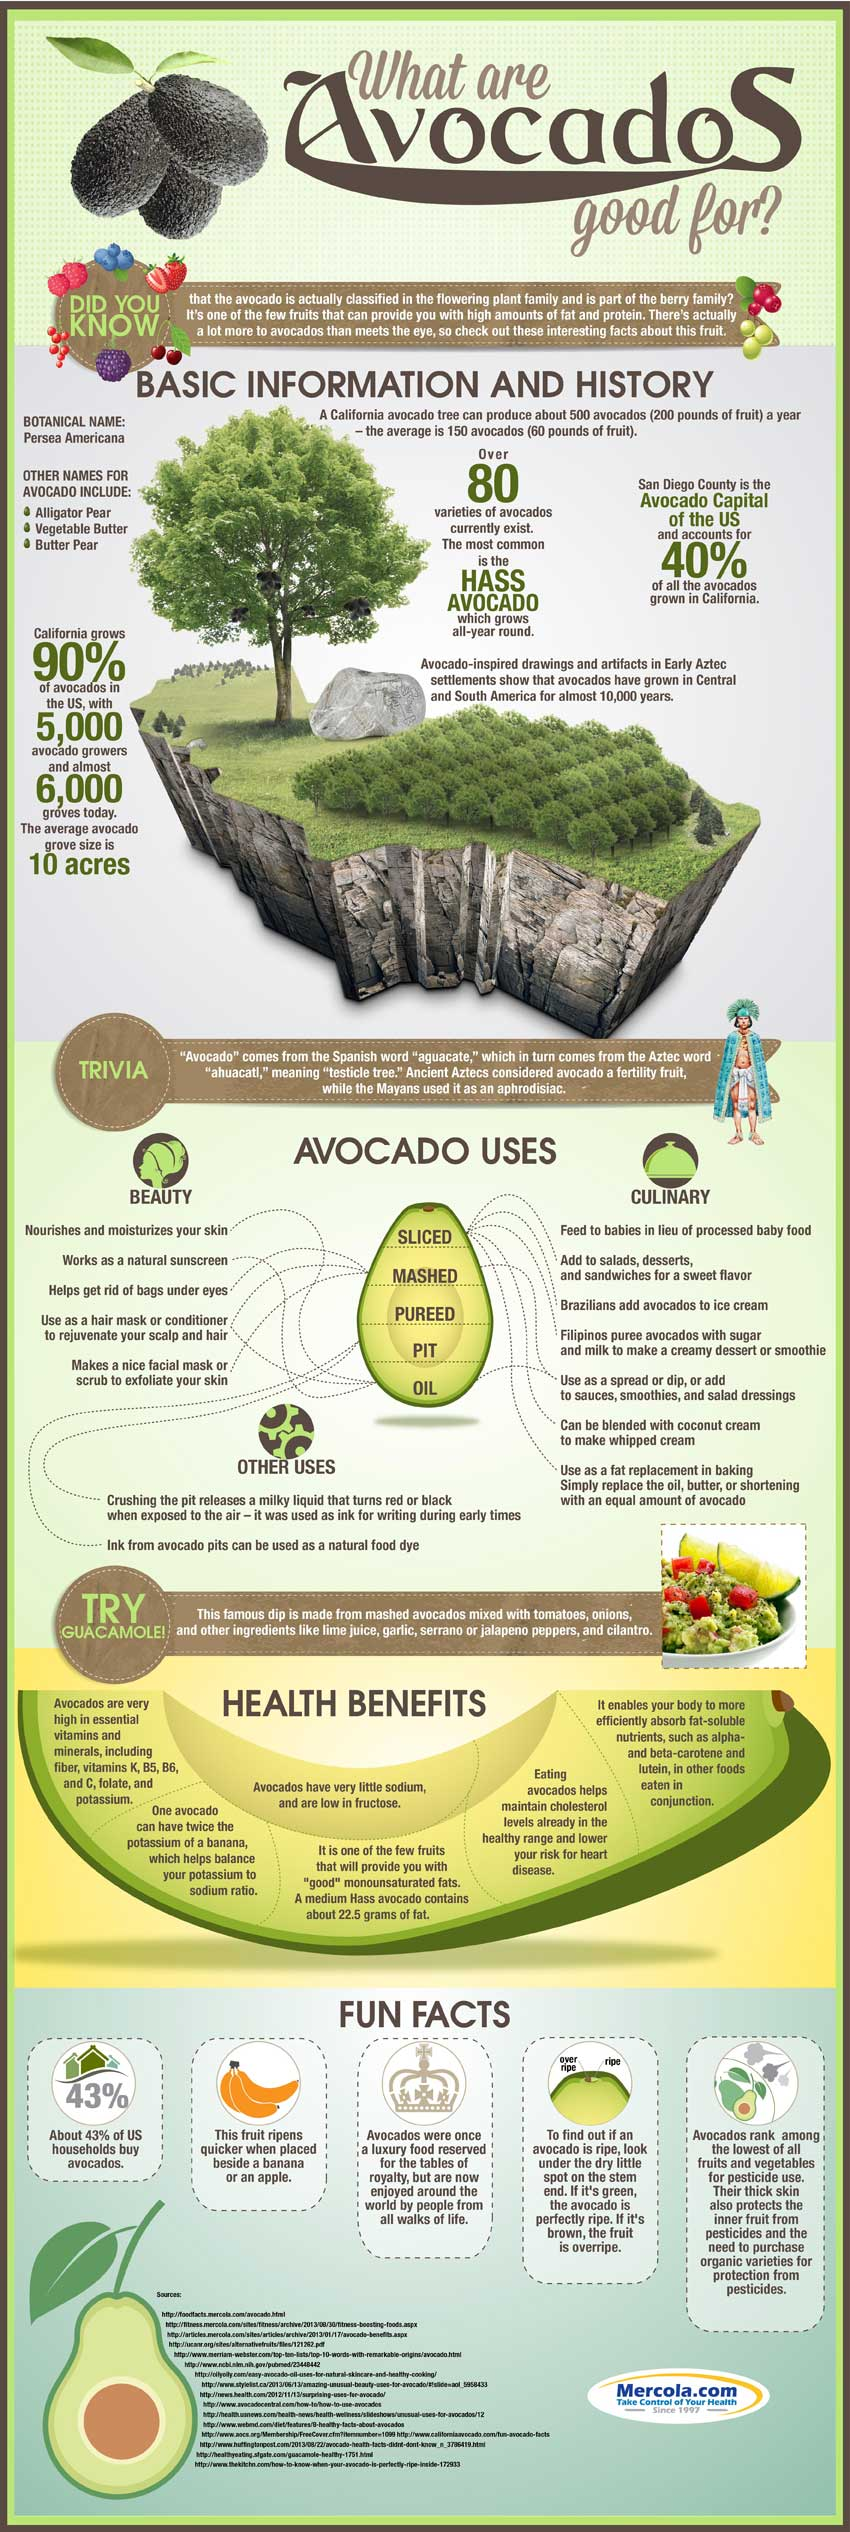 Avocado uses and Health benefits